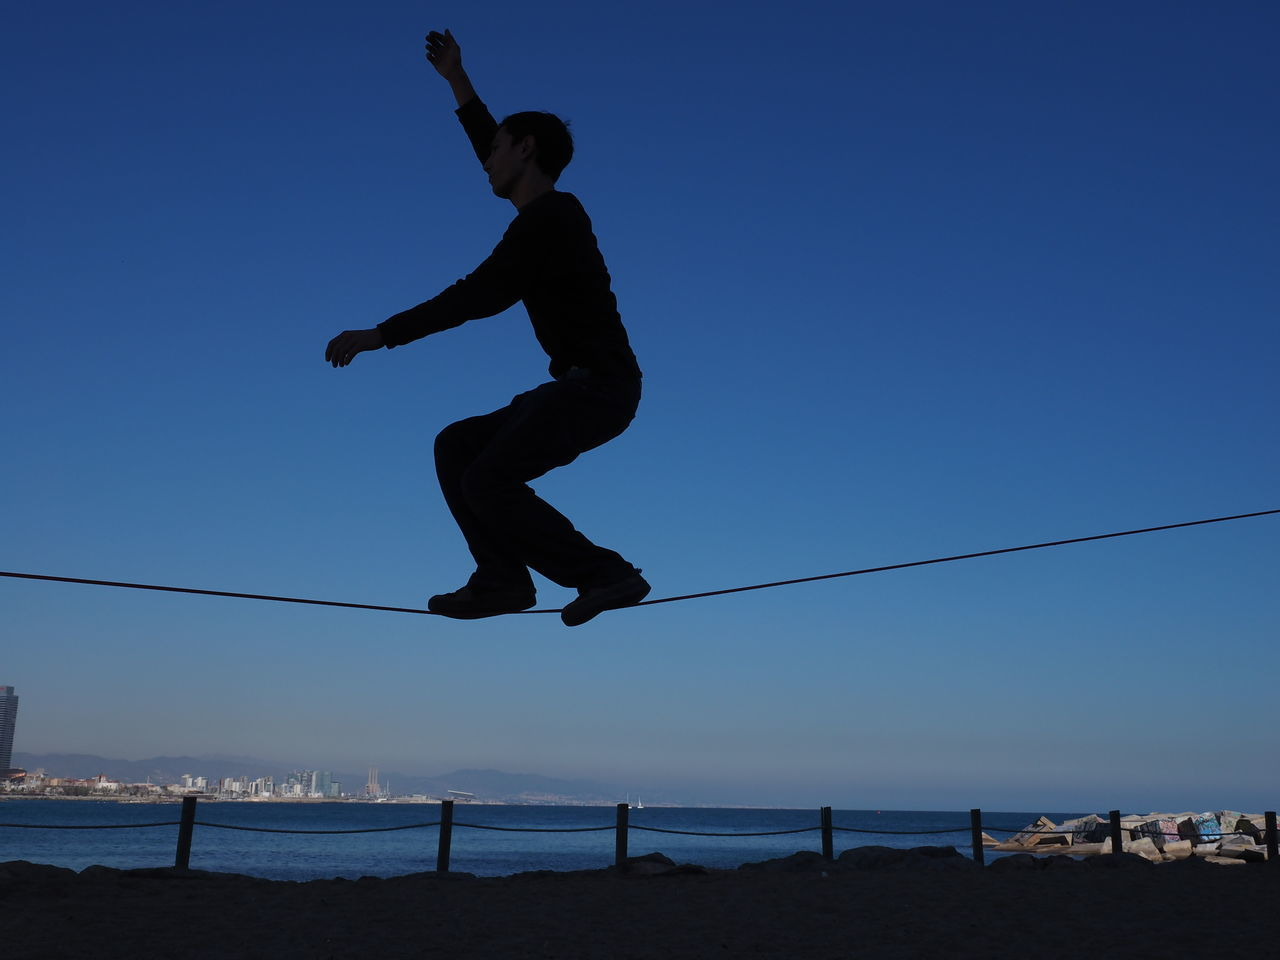 Man On Tightrope At Beach Against Clear Blue Sky